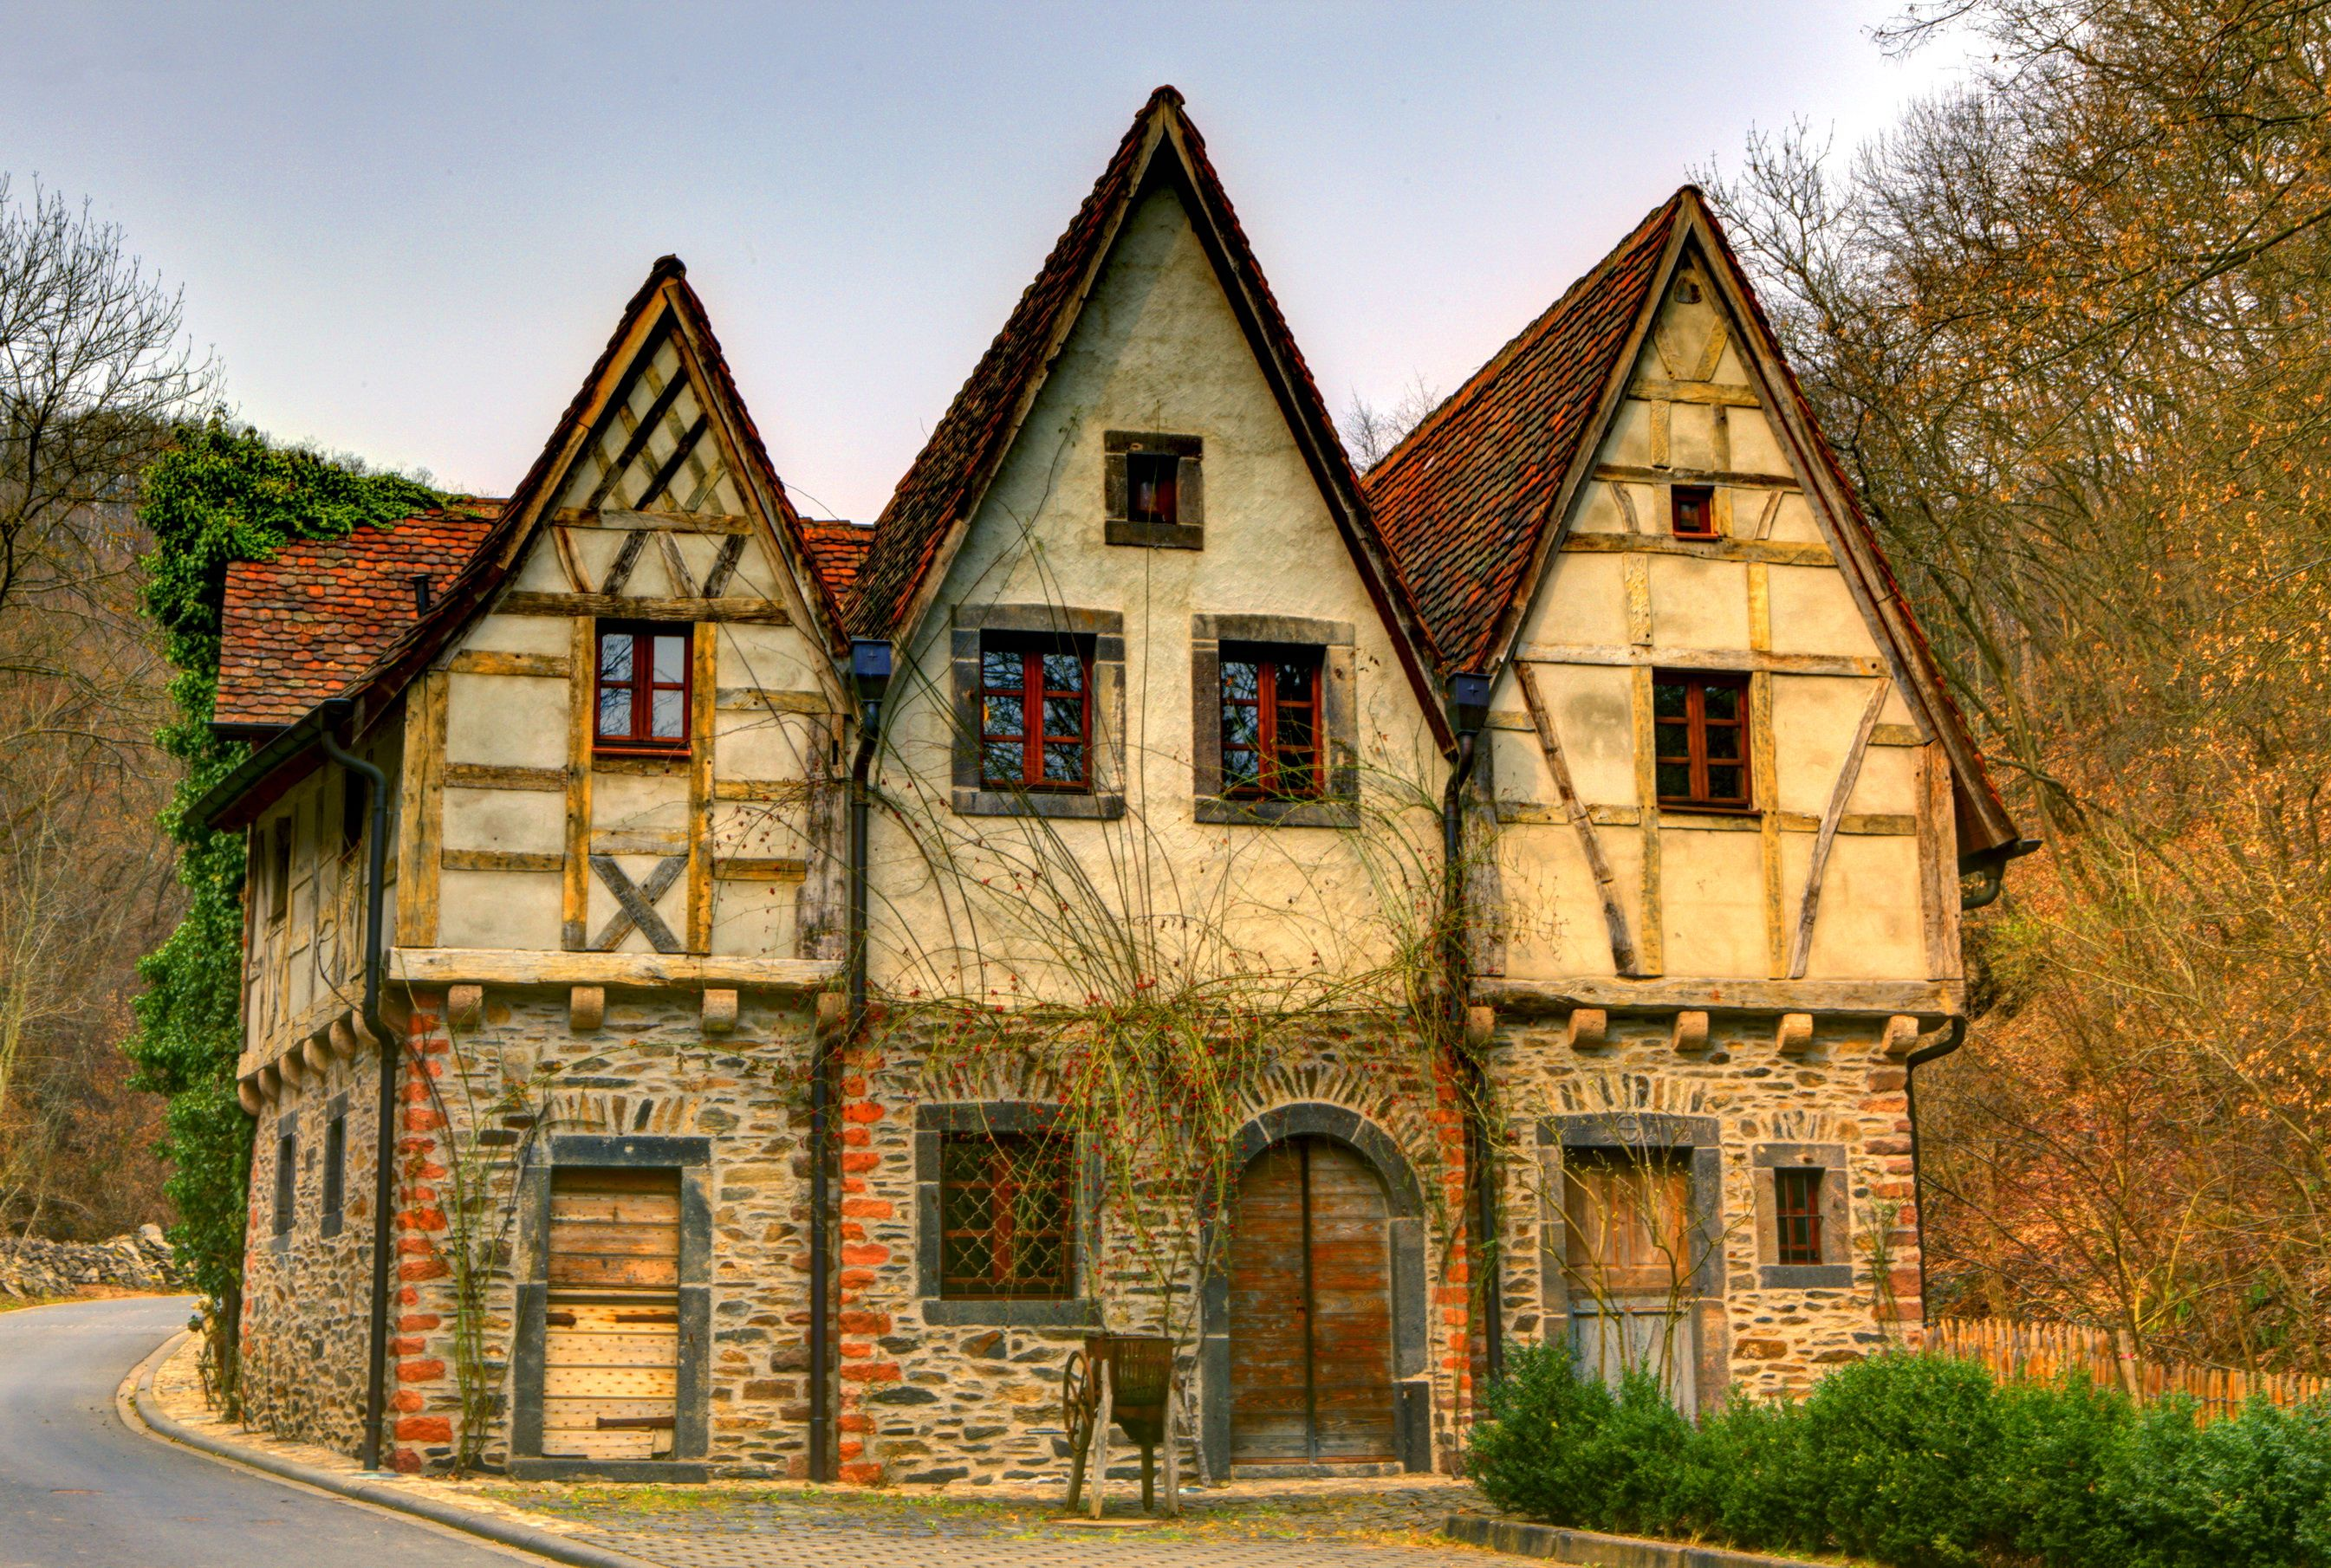 Pin By Natalie Faireheart On Fairy Tale Houses German Houses German Architecture Medieval Houses